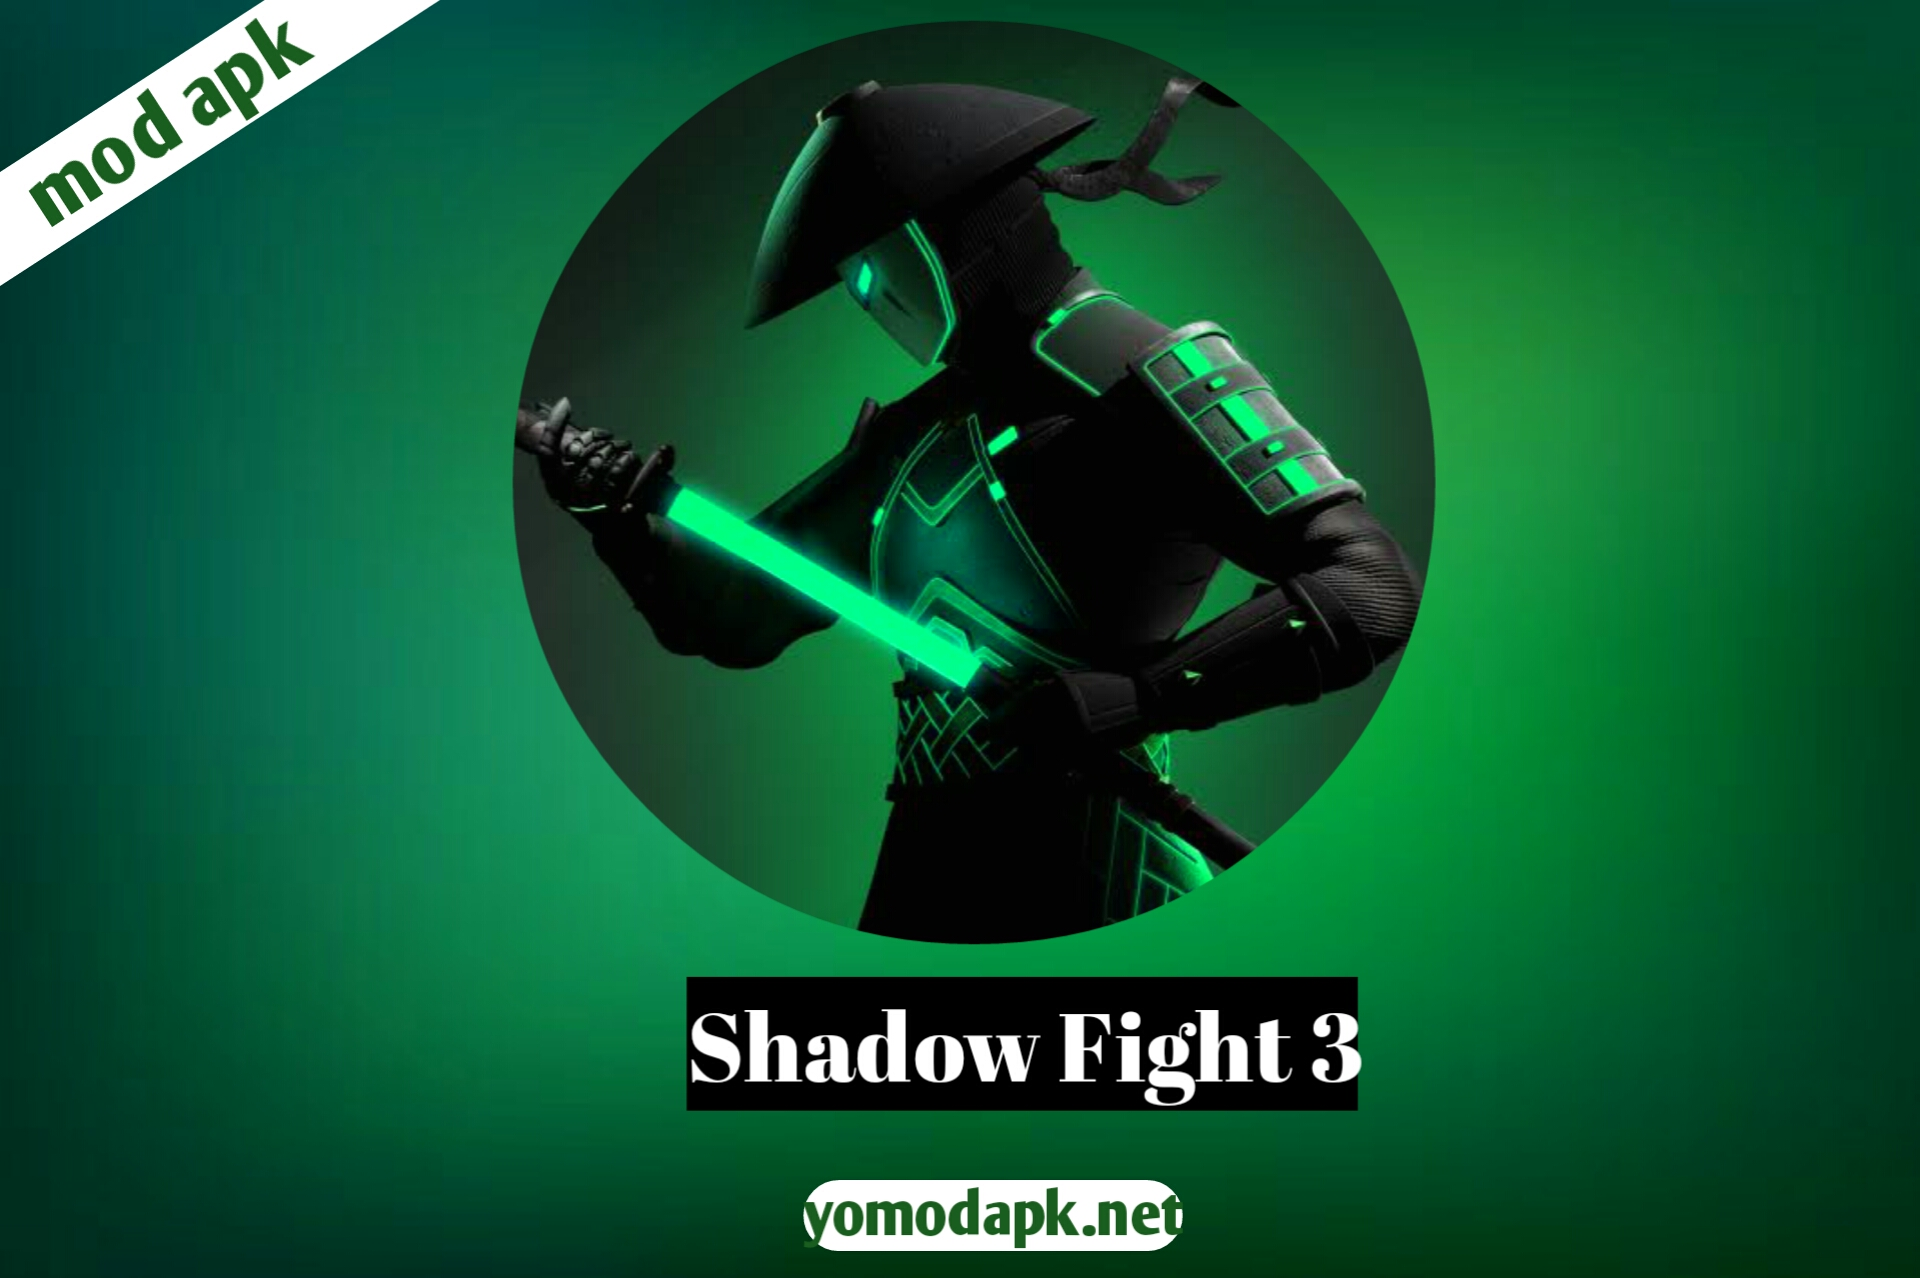 shadow fight 3